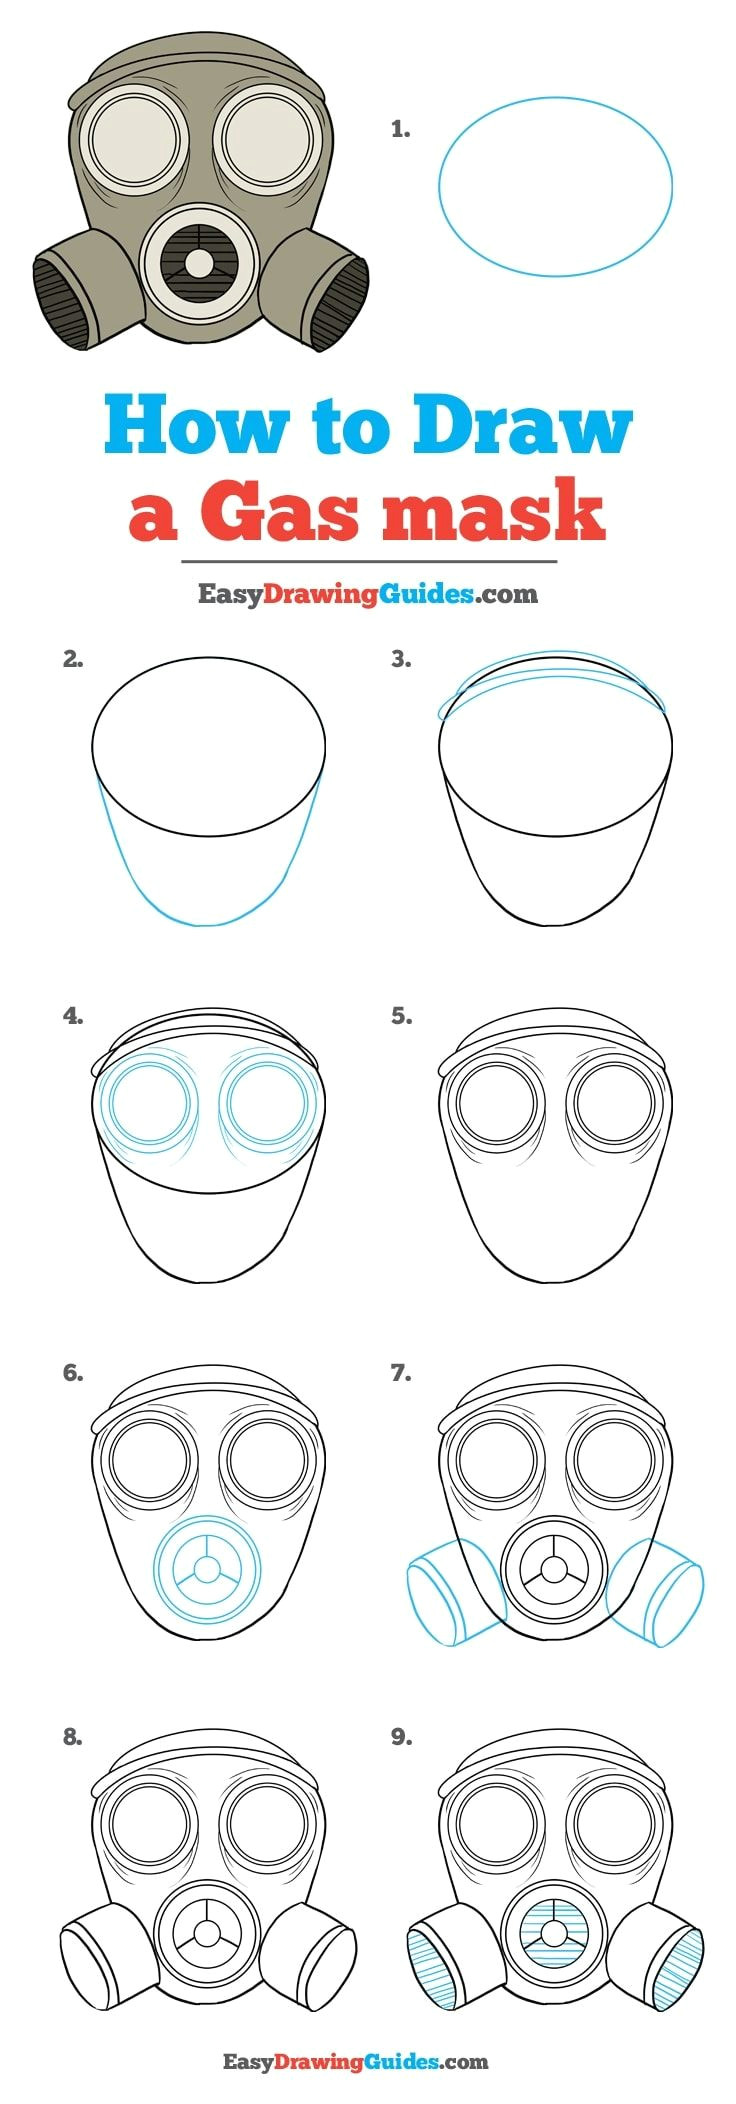 Easy to Draw Gas Mask How to Draw A Gas Mask Draw Zeichnungsanleitung Ideen